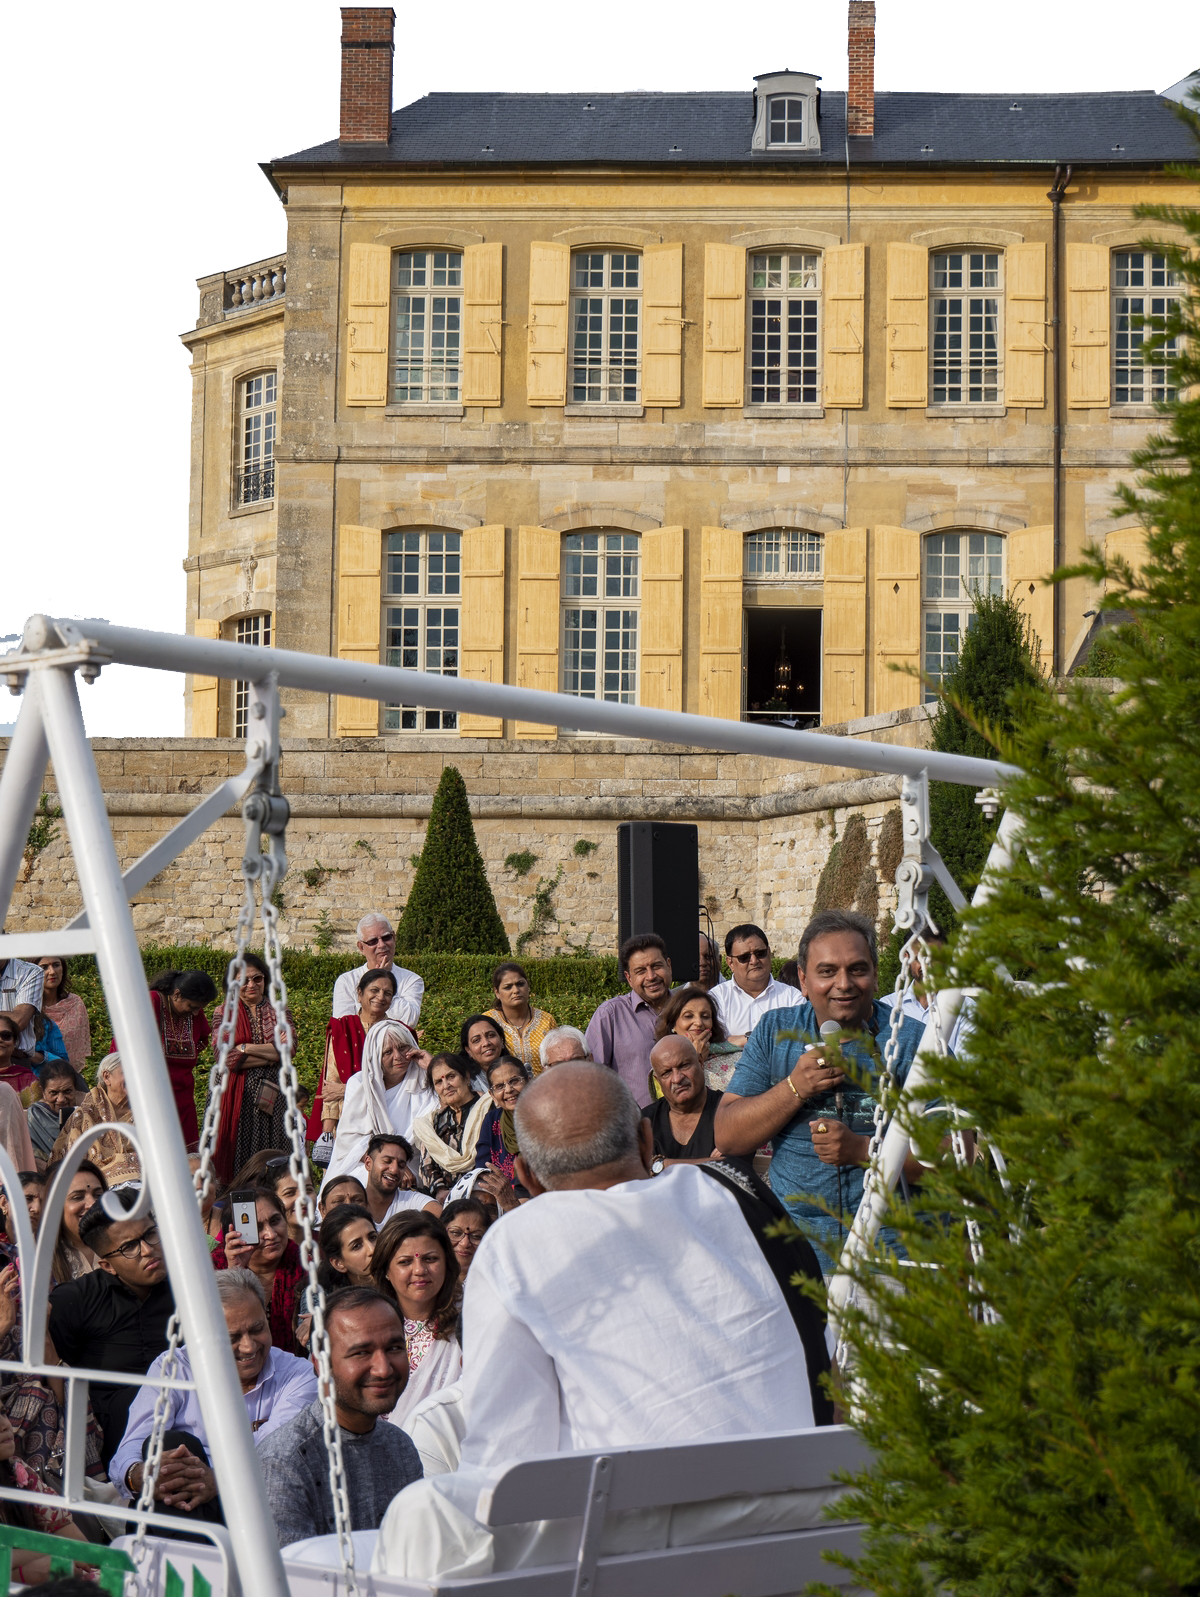 Morari Bapu at Chateau Villette France